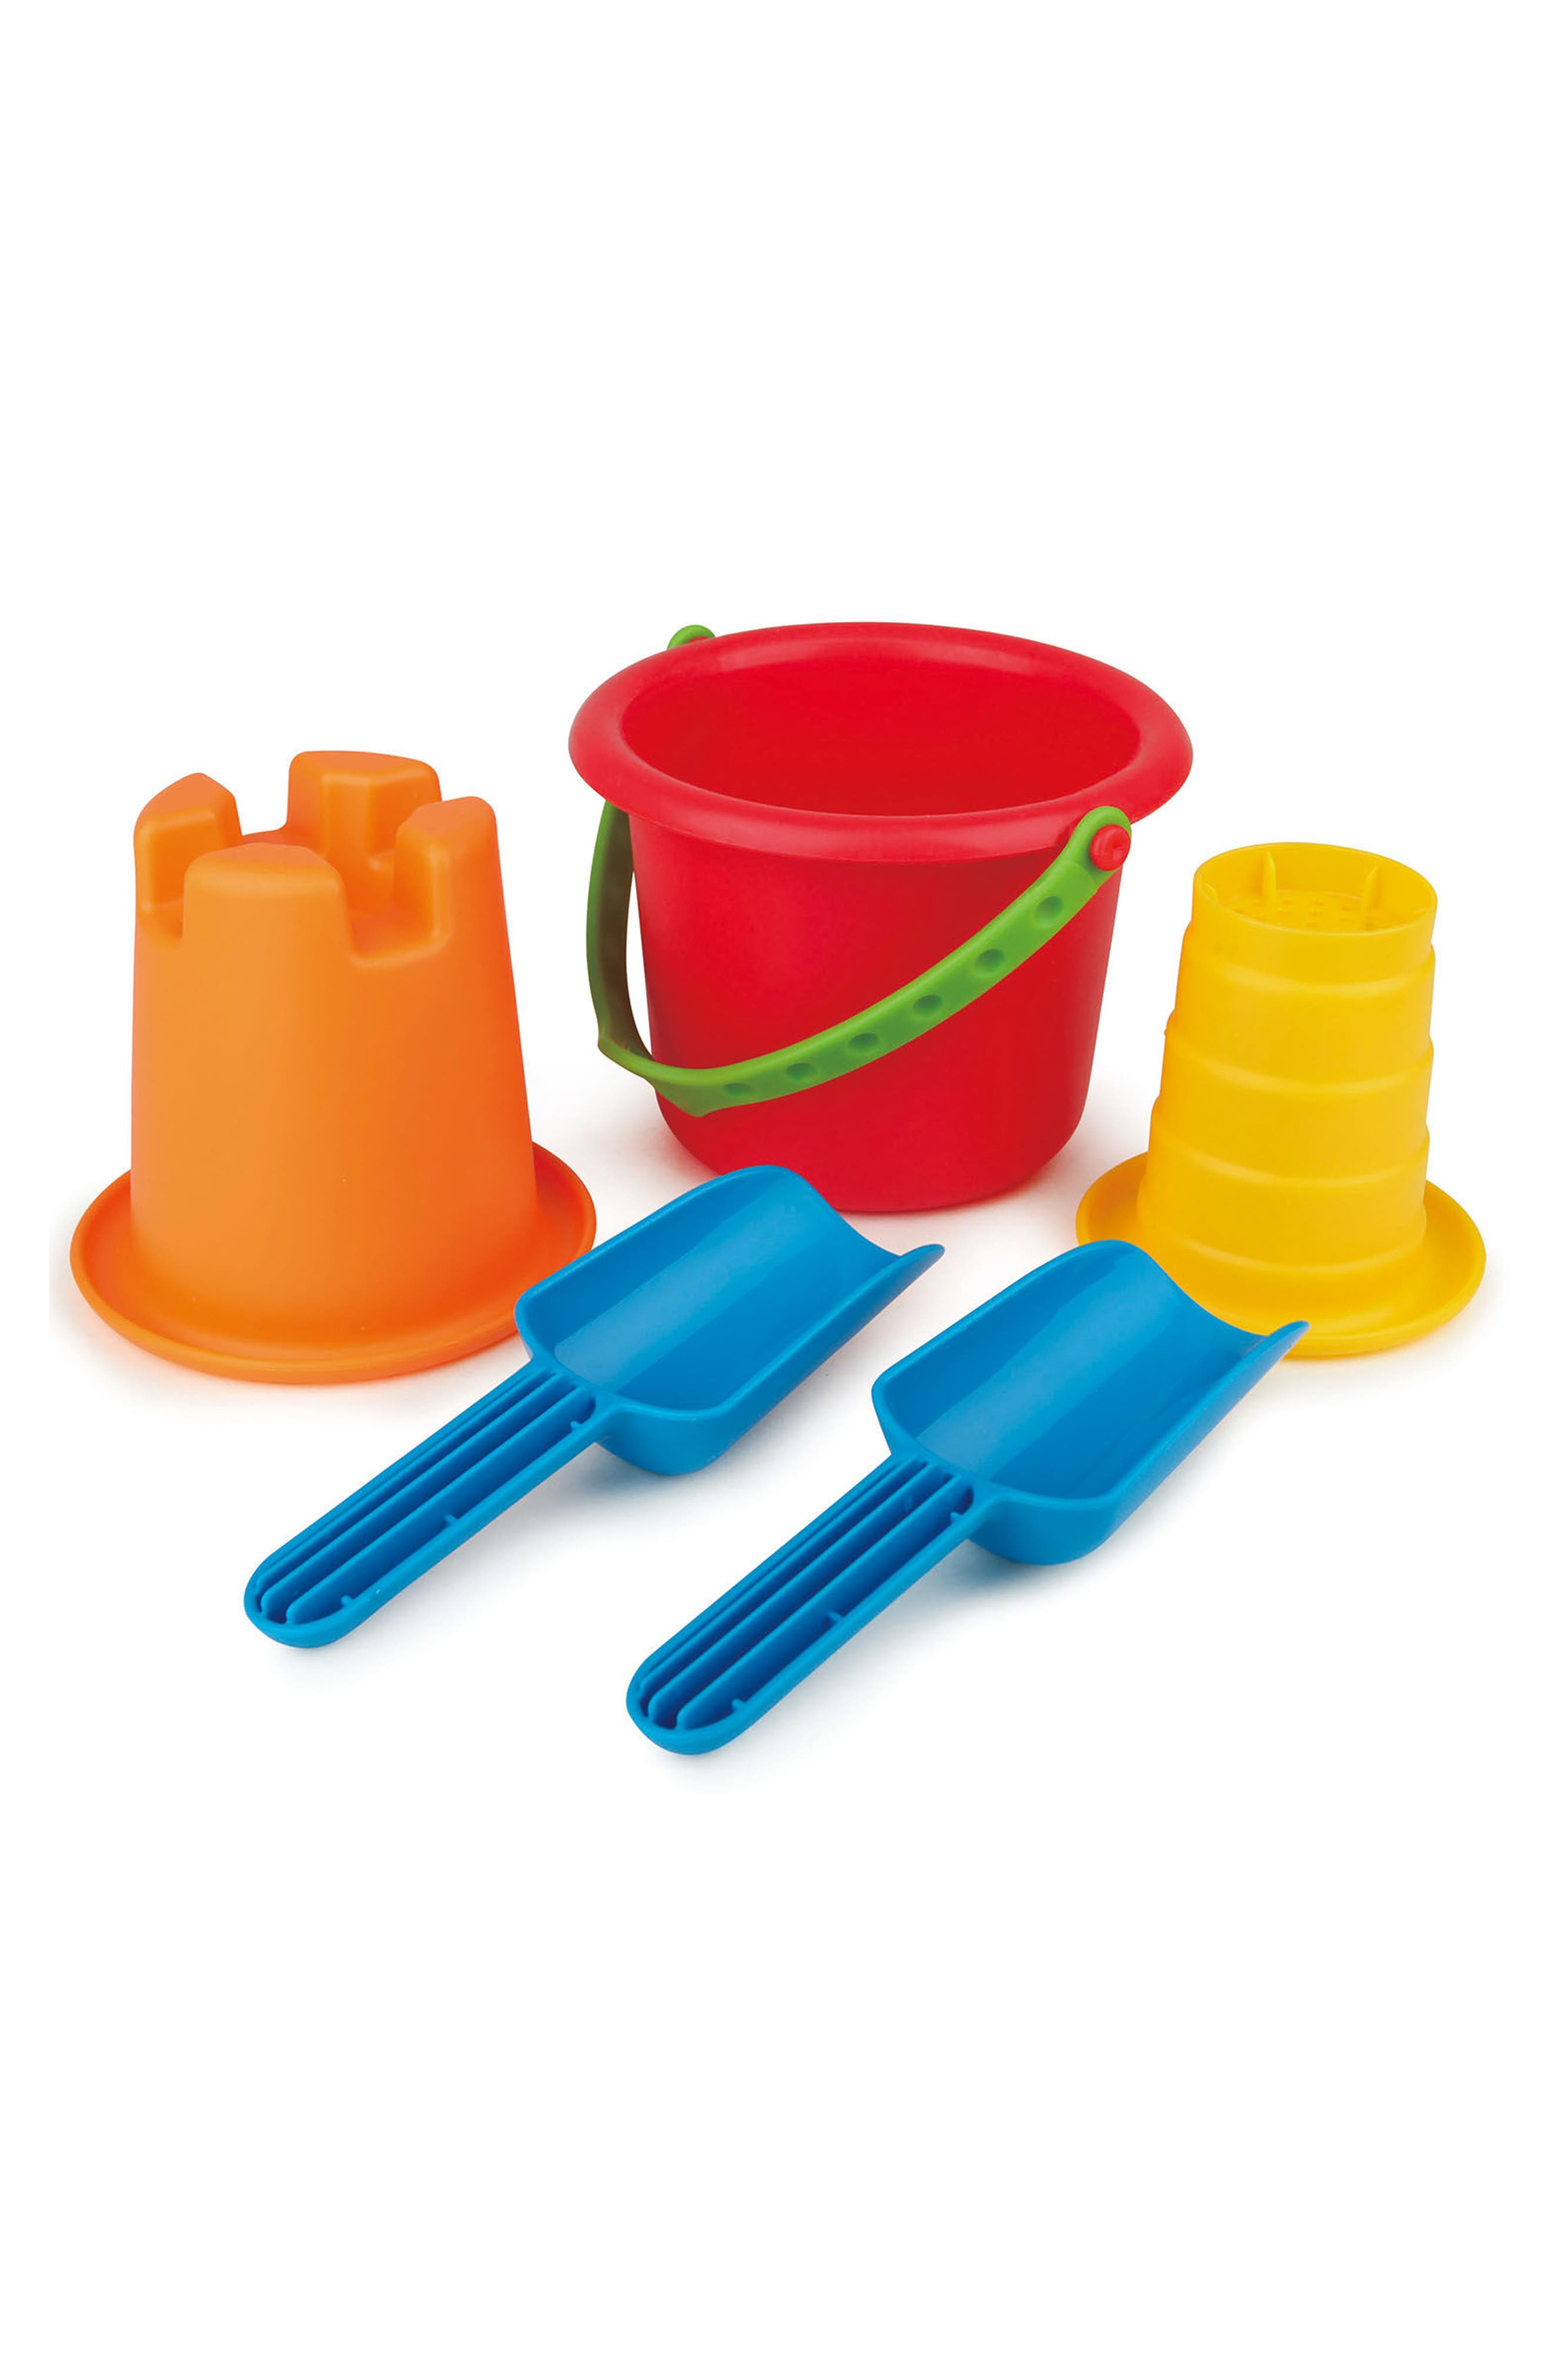 5-in-1 Beach Toy Kit,                             Main thumbnail 1, color,                             600